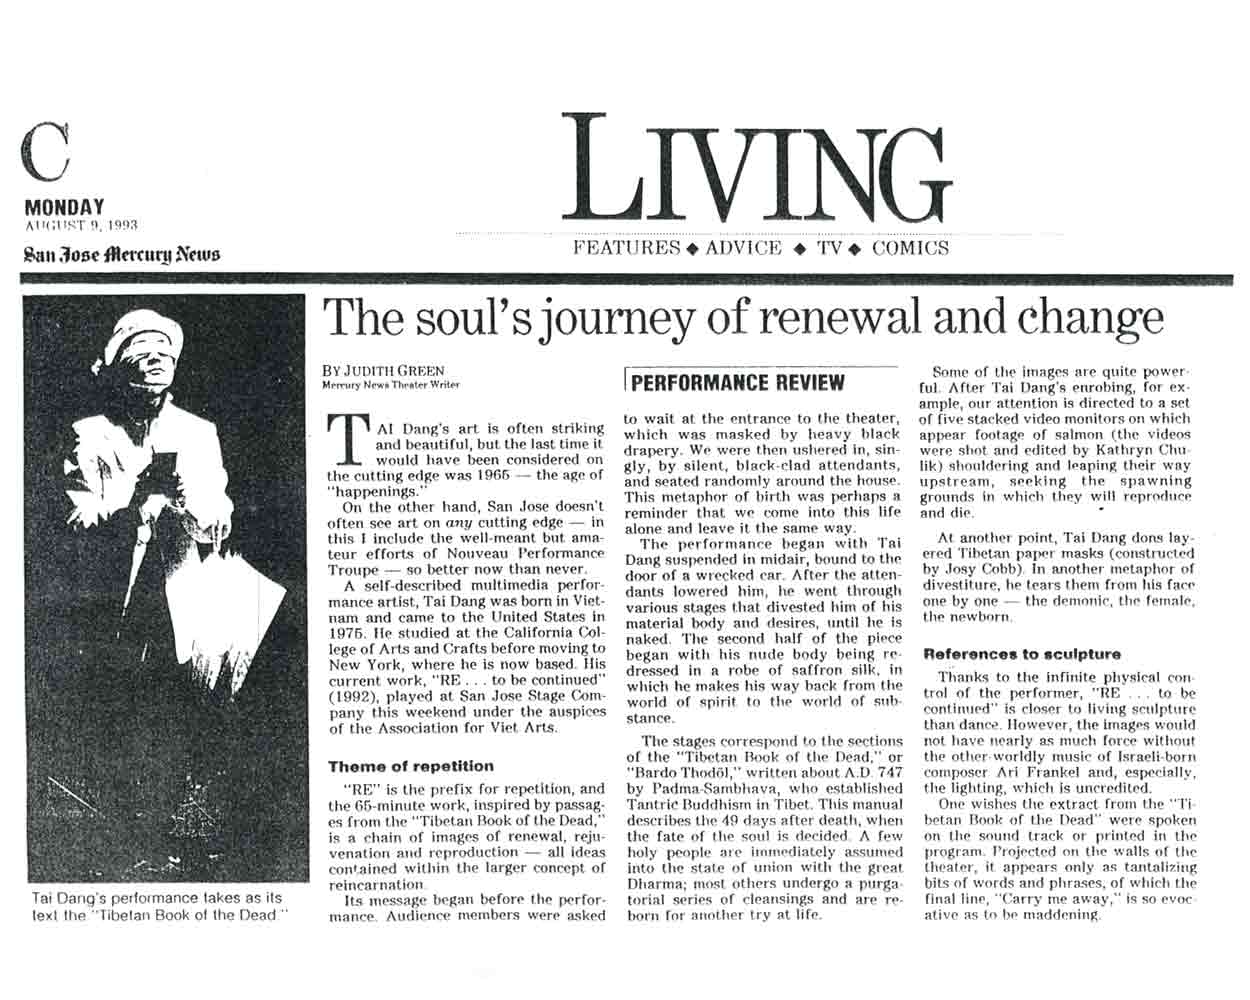 The Soul's Journey of Renewal and Change